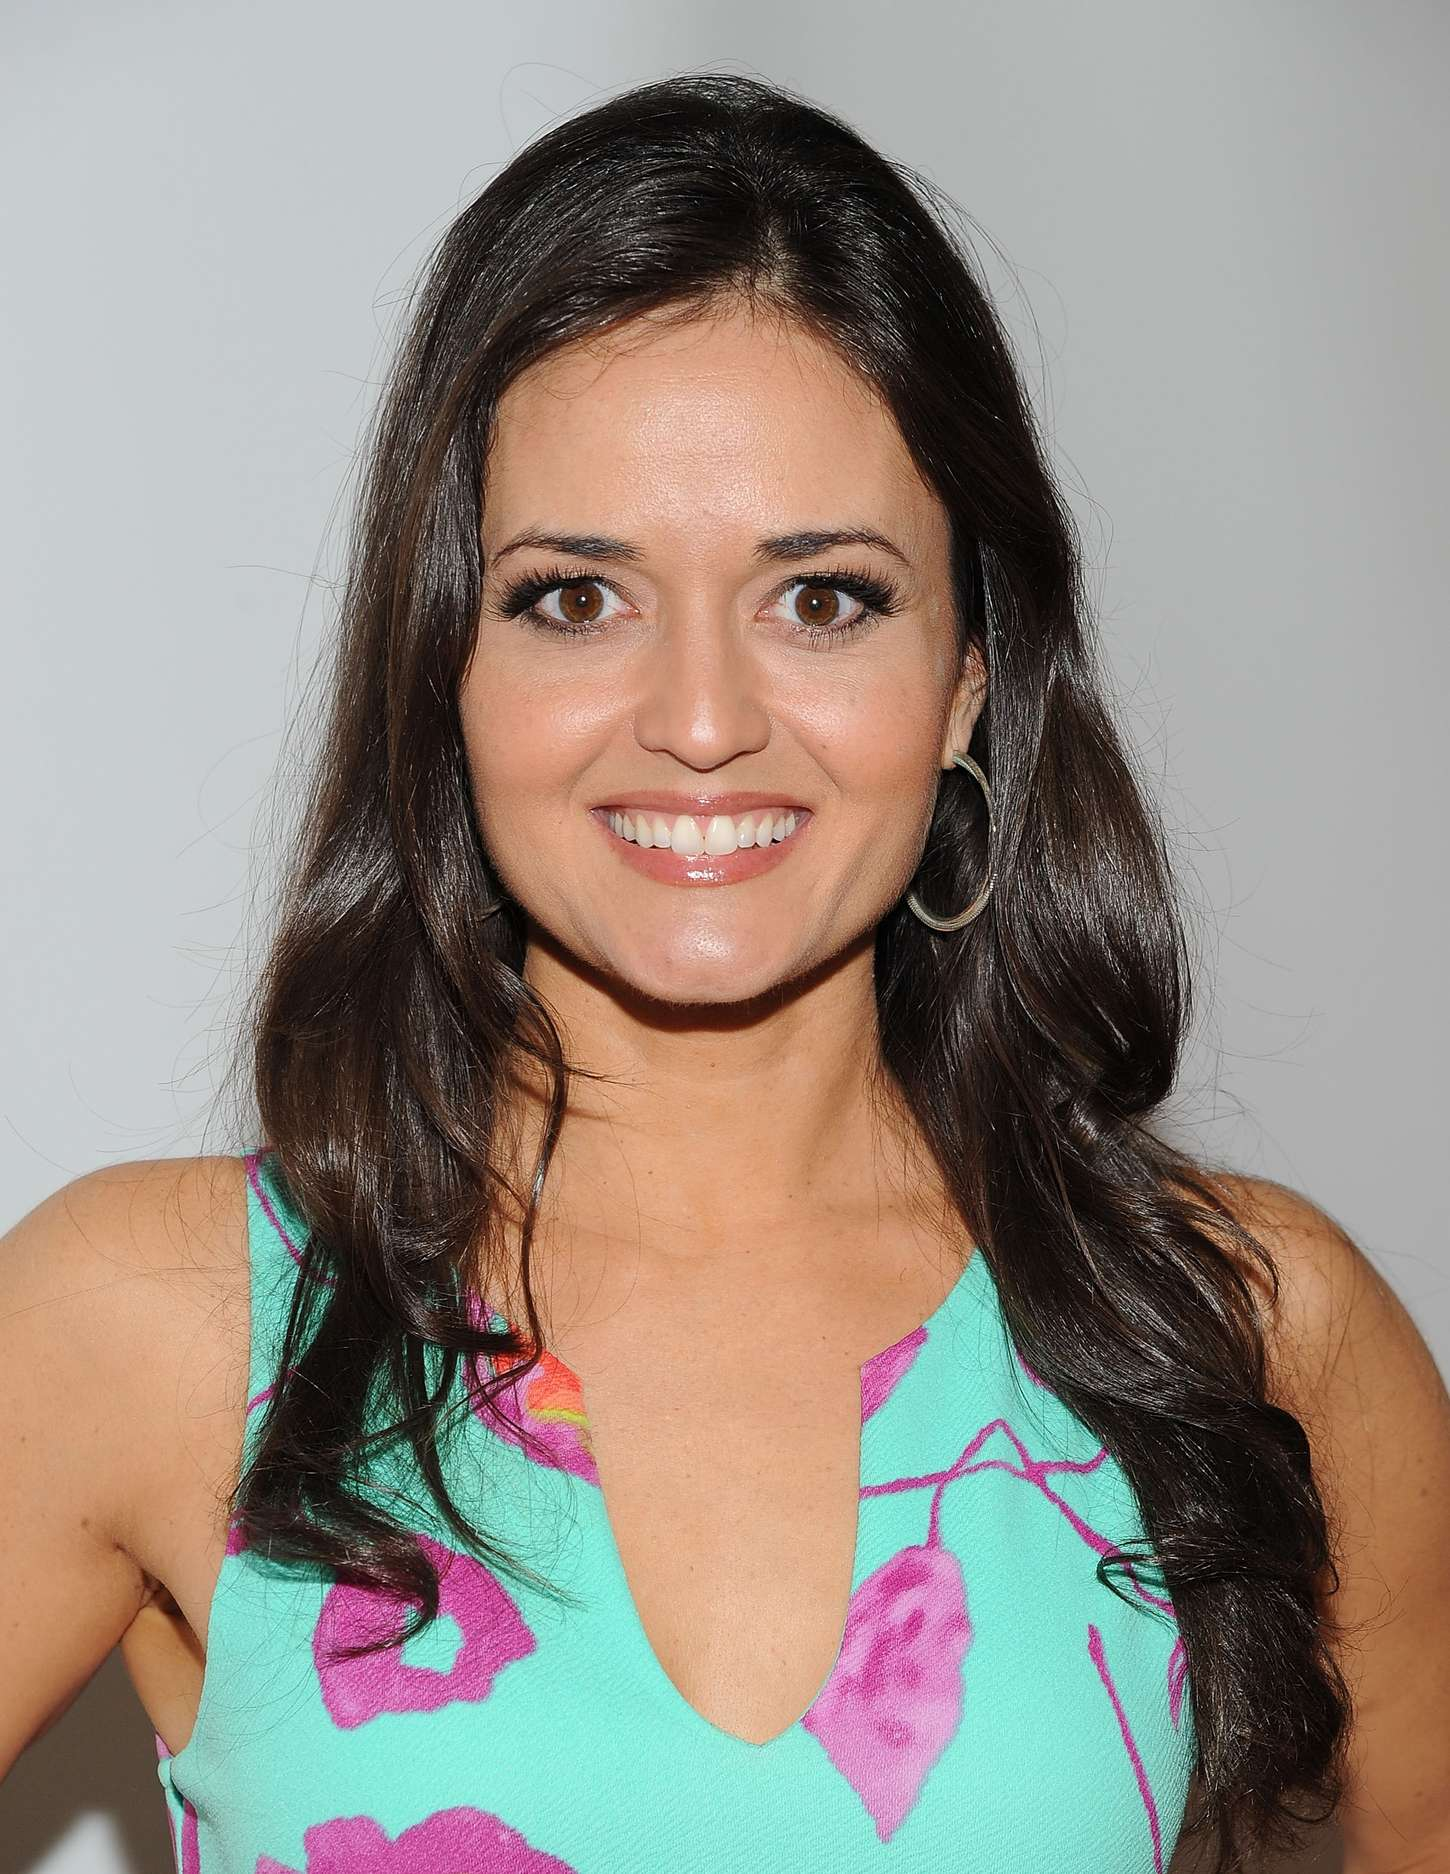 Danica McKellar Annual A Time For Heroes Family Festival in Culver City